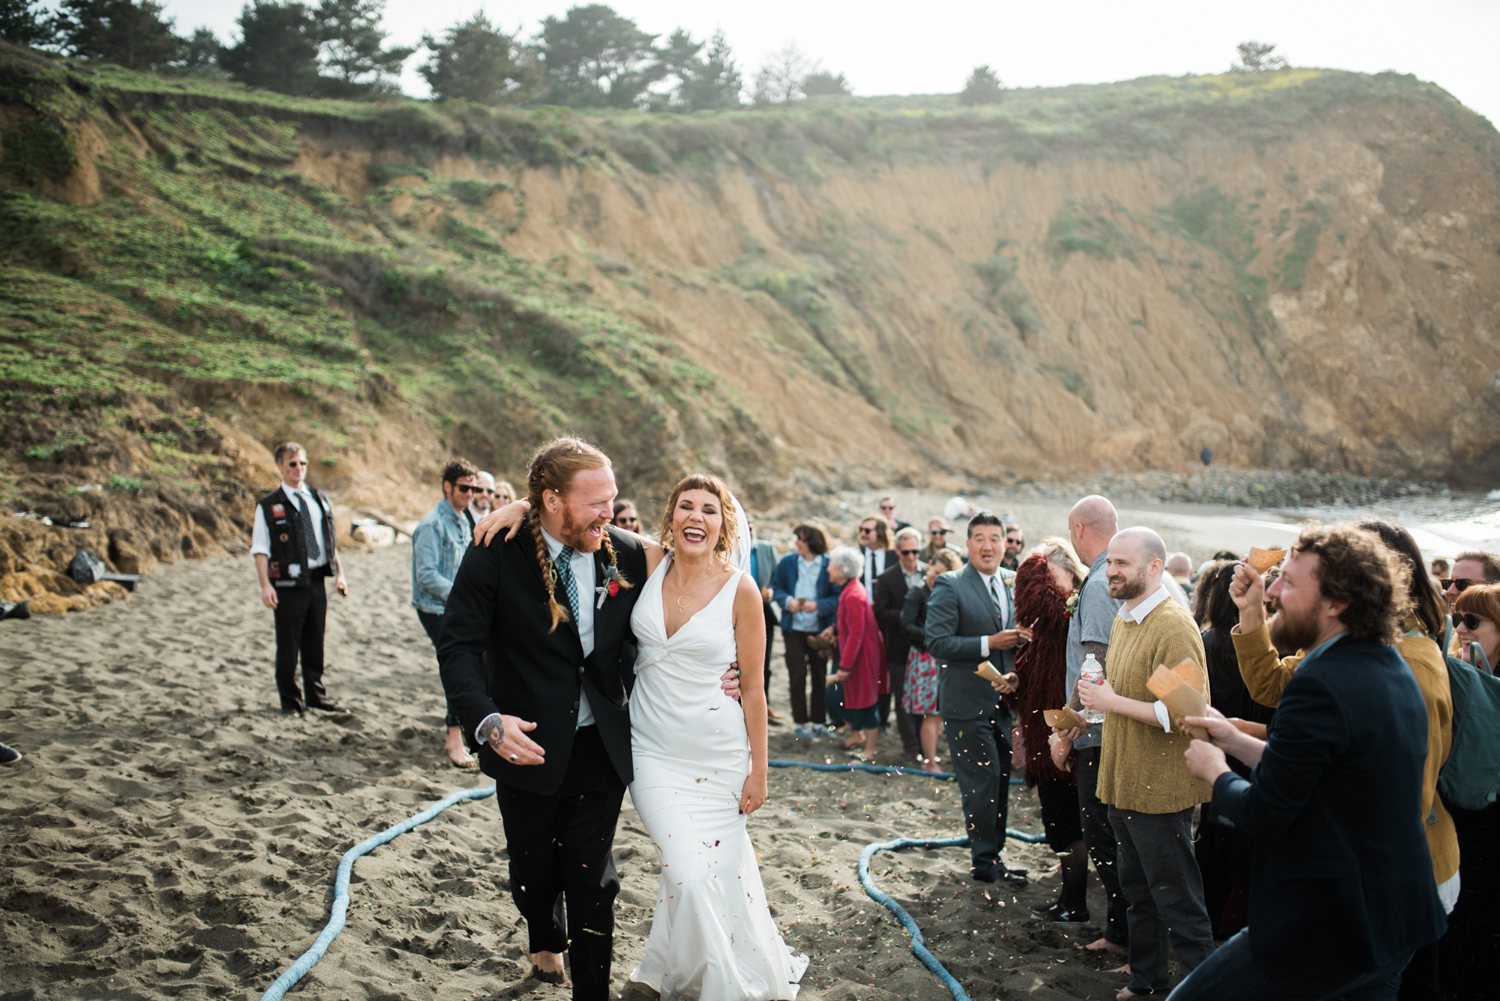 Pacifica_Beach_Surfer_Wedding_114.jpg